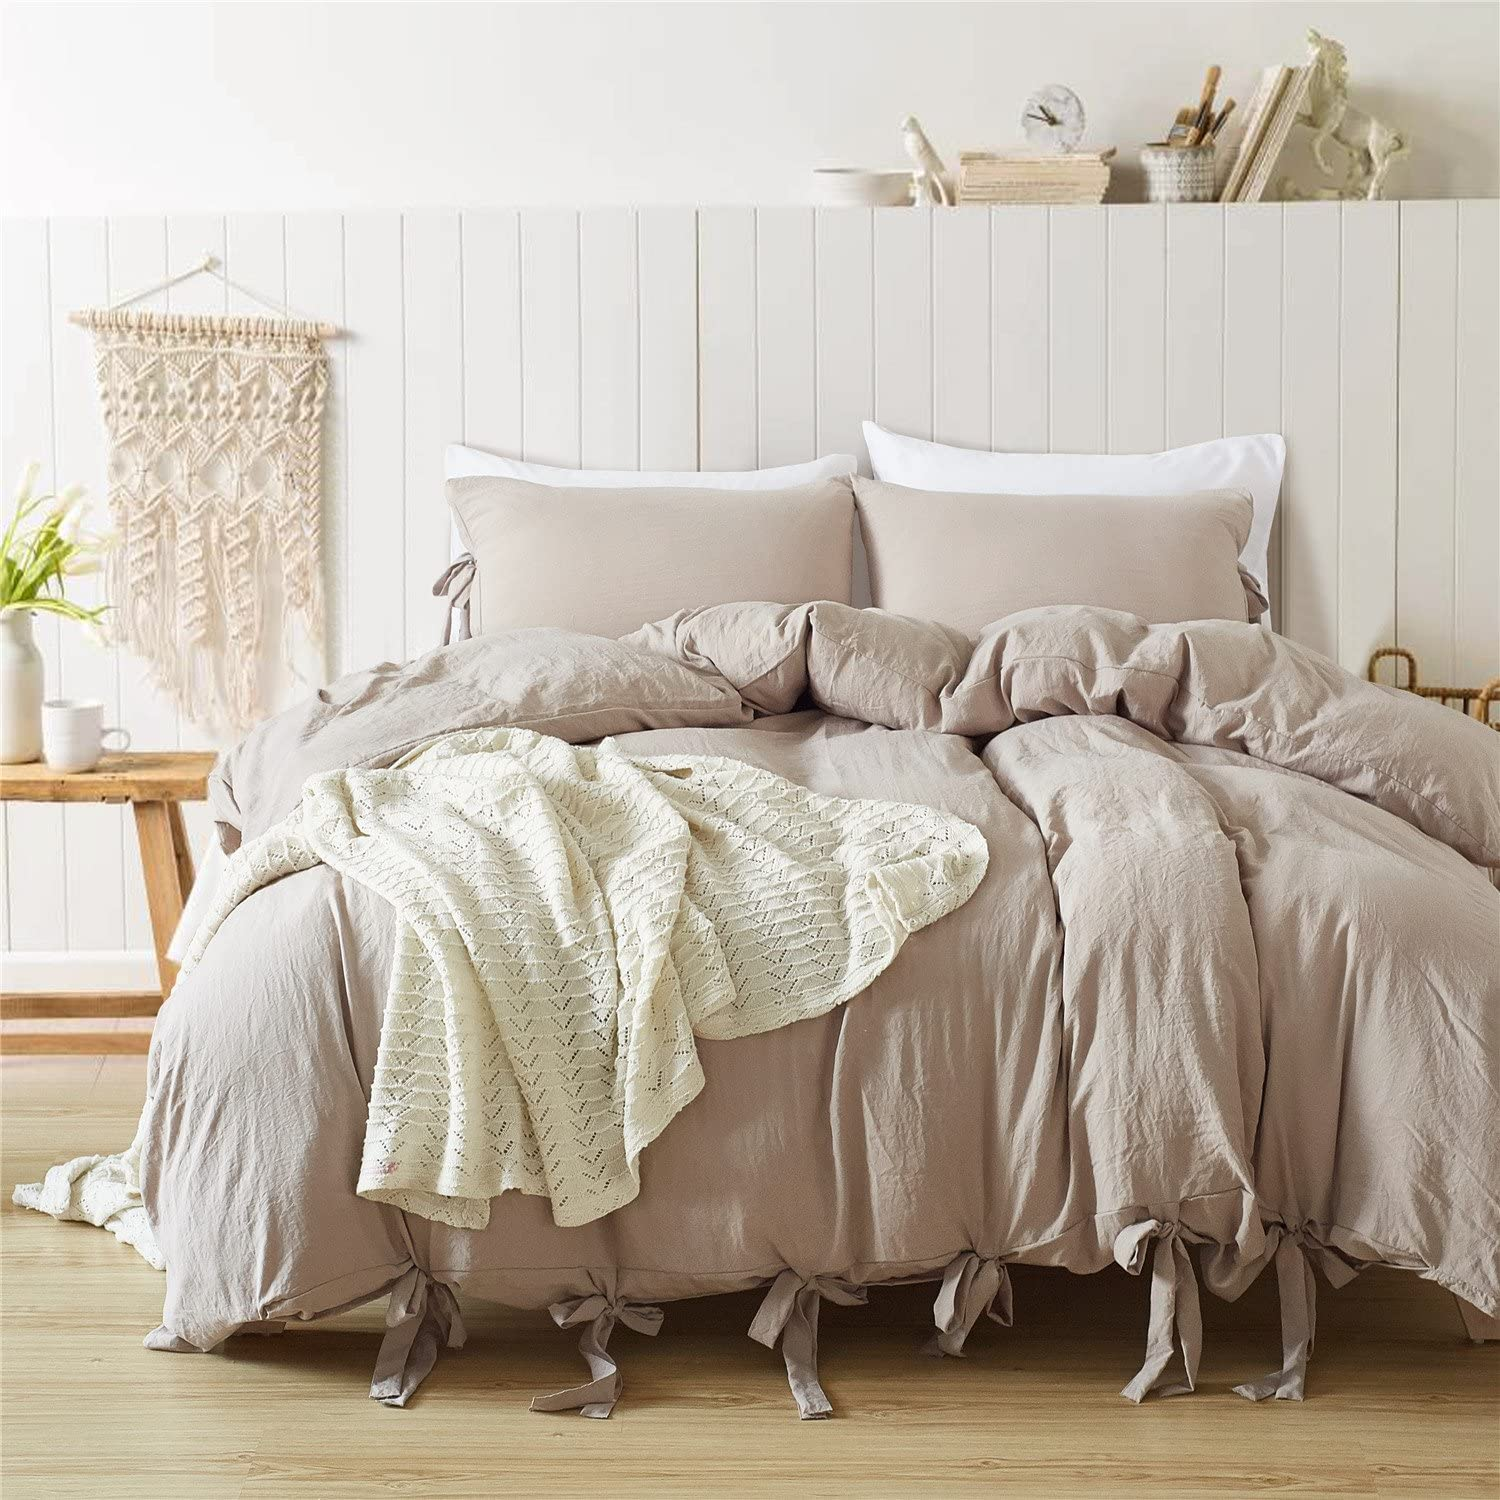 CoutureBridal Washed Cotton Duvet Cover Full Queen 90x90 Khaki Solid Modern Simple Soft Natural Wrinkled Look Reversible 3 Piece Bedding Set with Zipper Ties